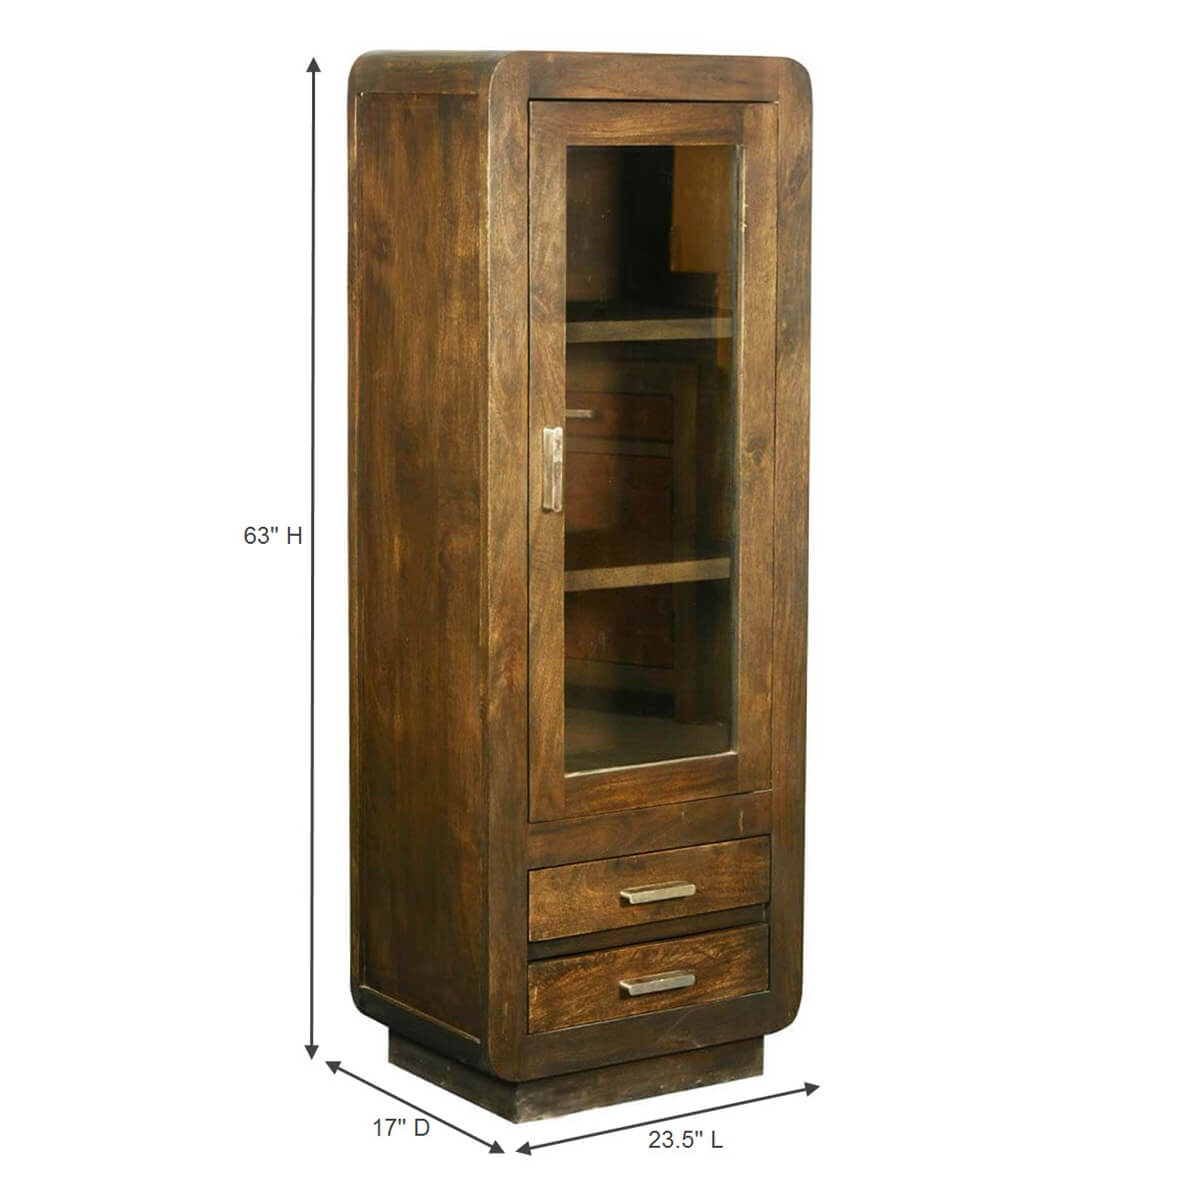 Rounded Corners Mango Wood Armoire Display Cabinet W Drawers